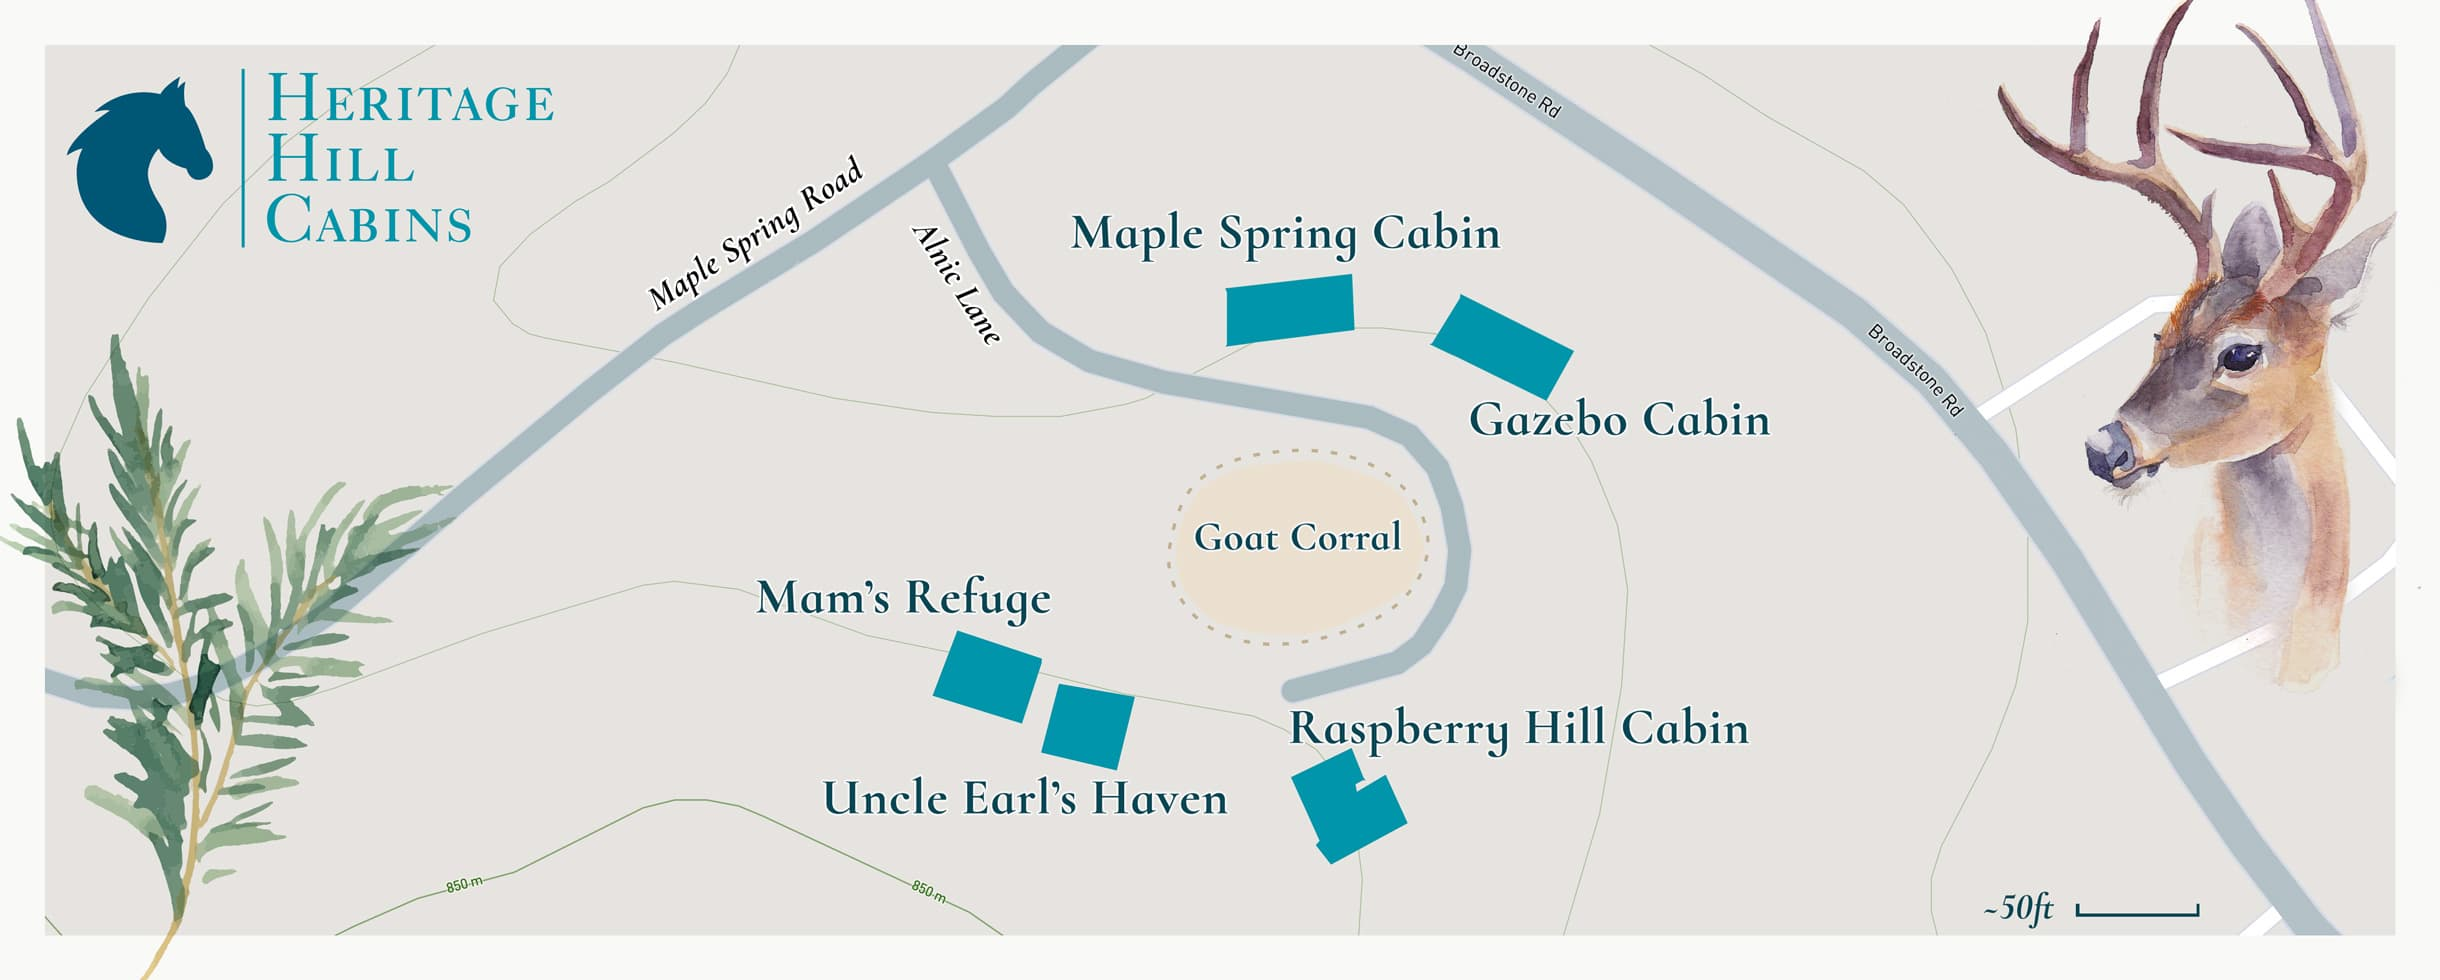 Heritage Hill Cabins - Property Map